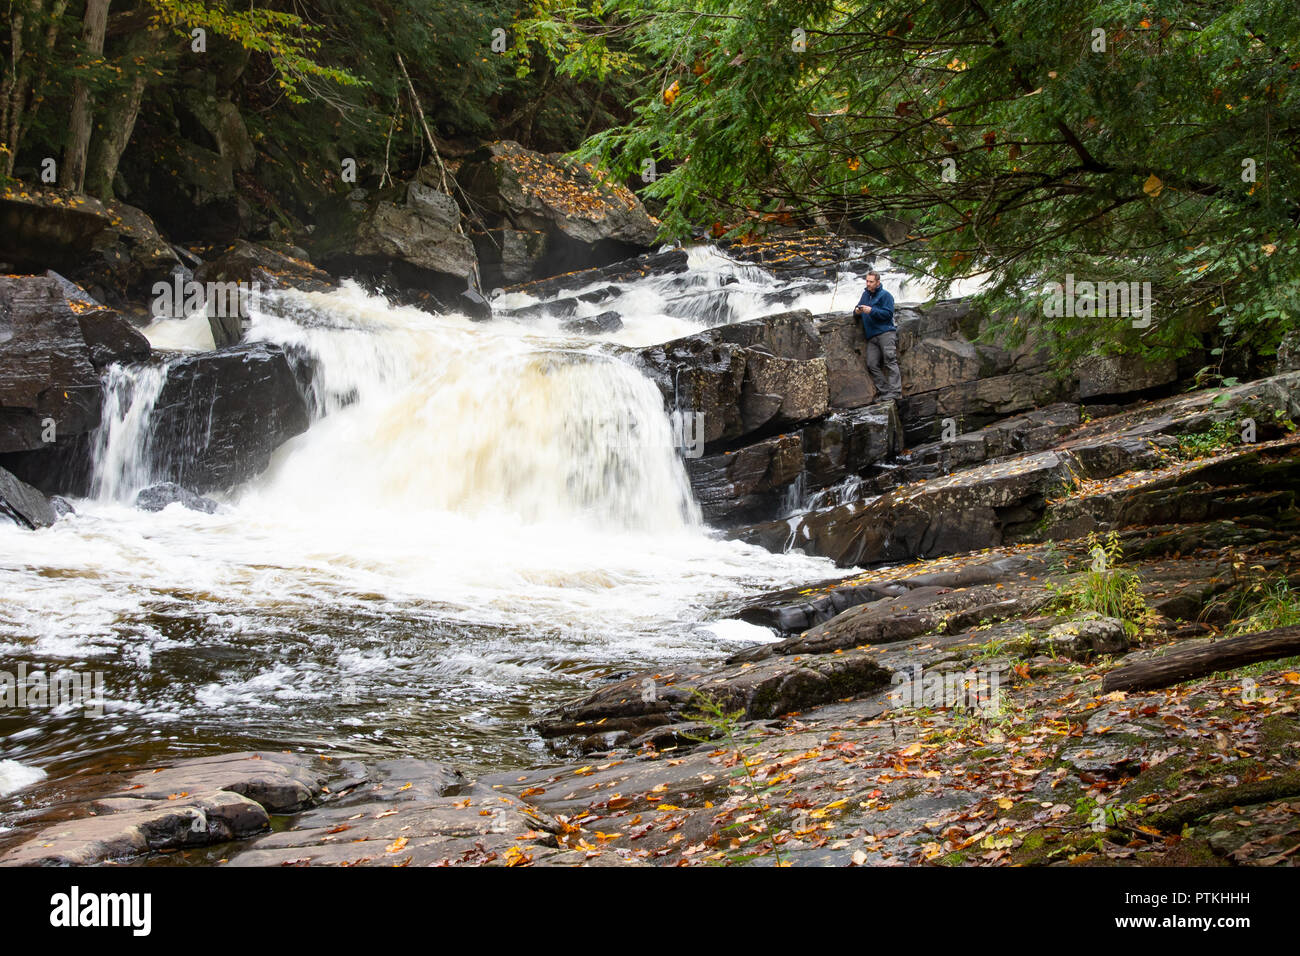 Austin Falls waterfall on the Sacandaga River in the Adirondack Mountains, NY USA with a young man perched on a rock ledge watching the water. - Stock Image